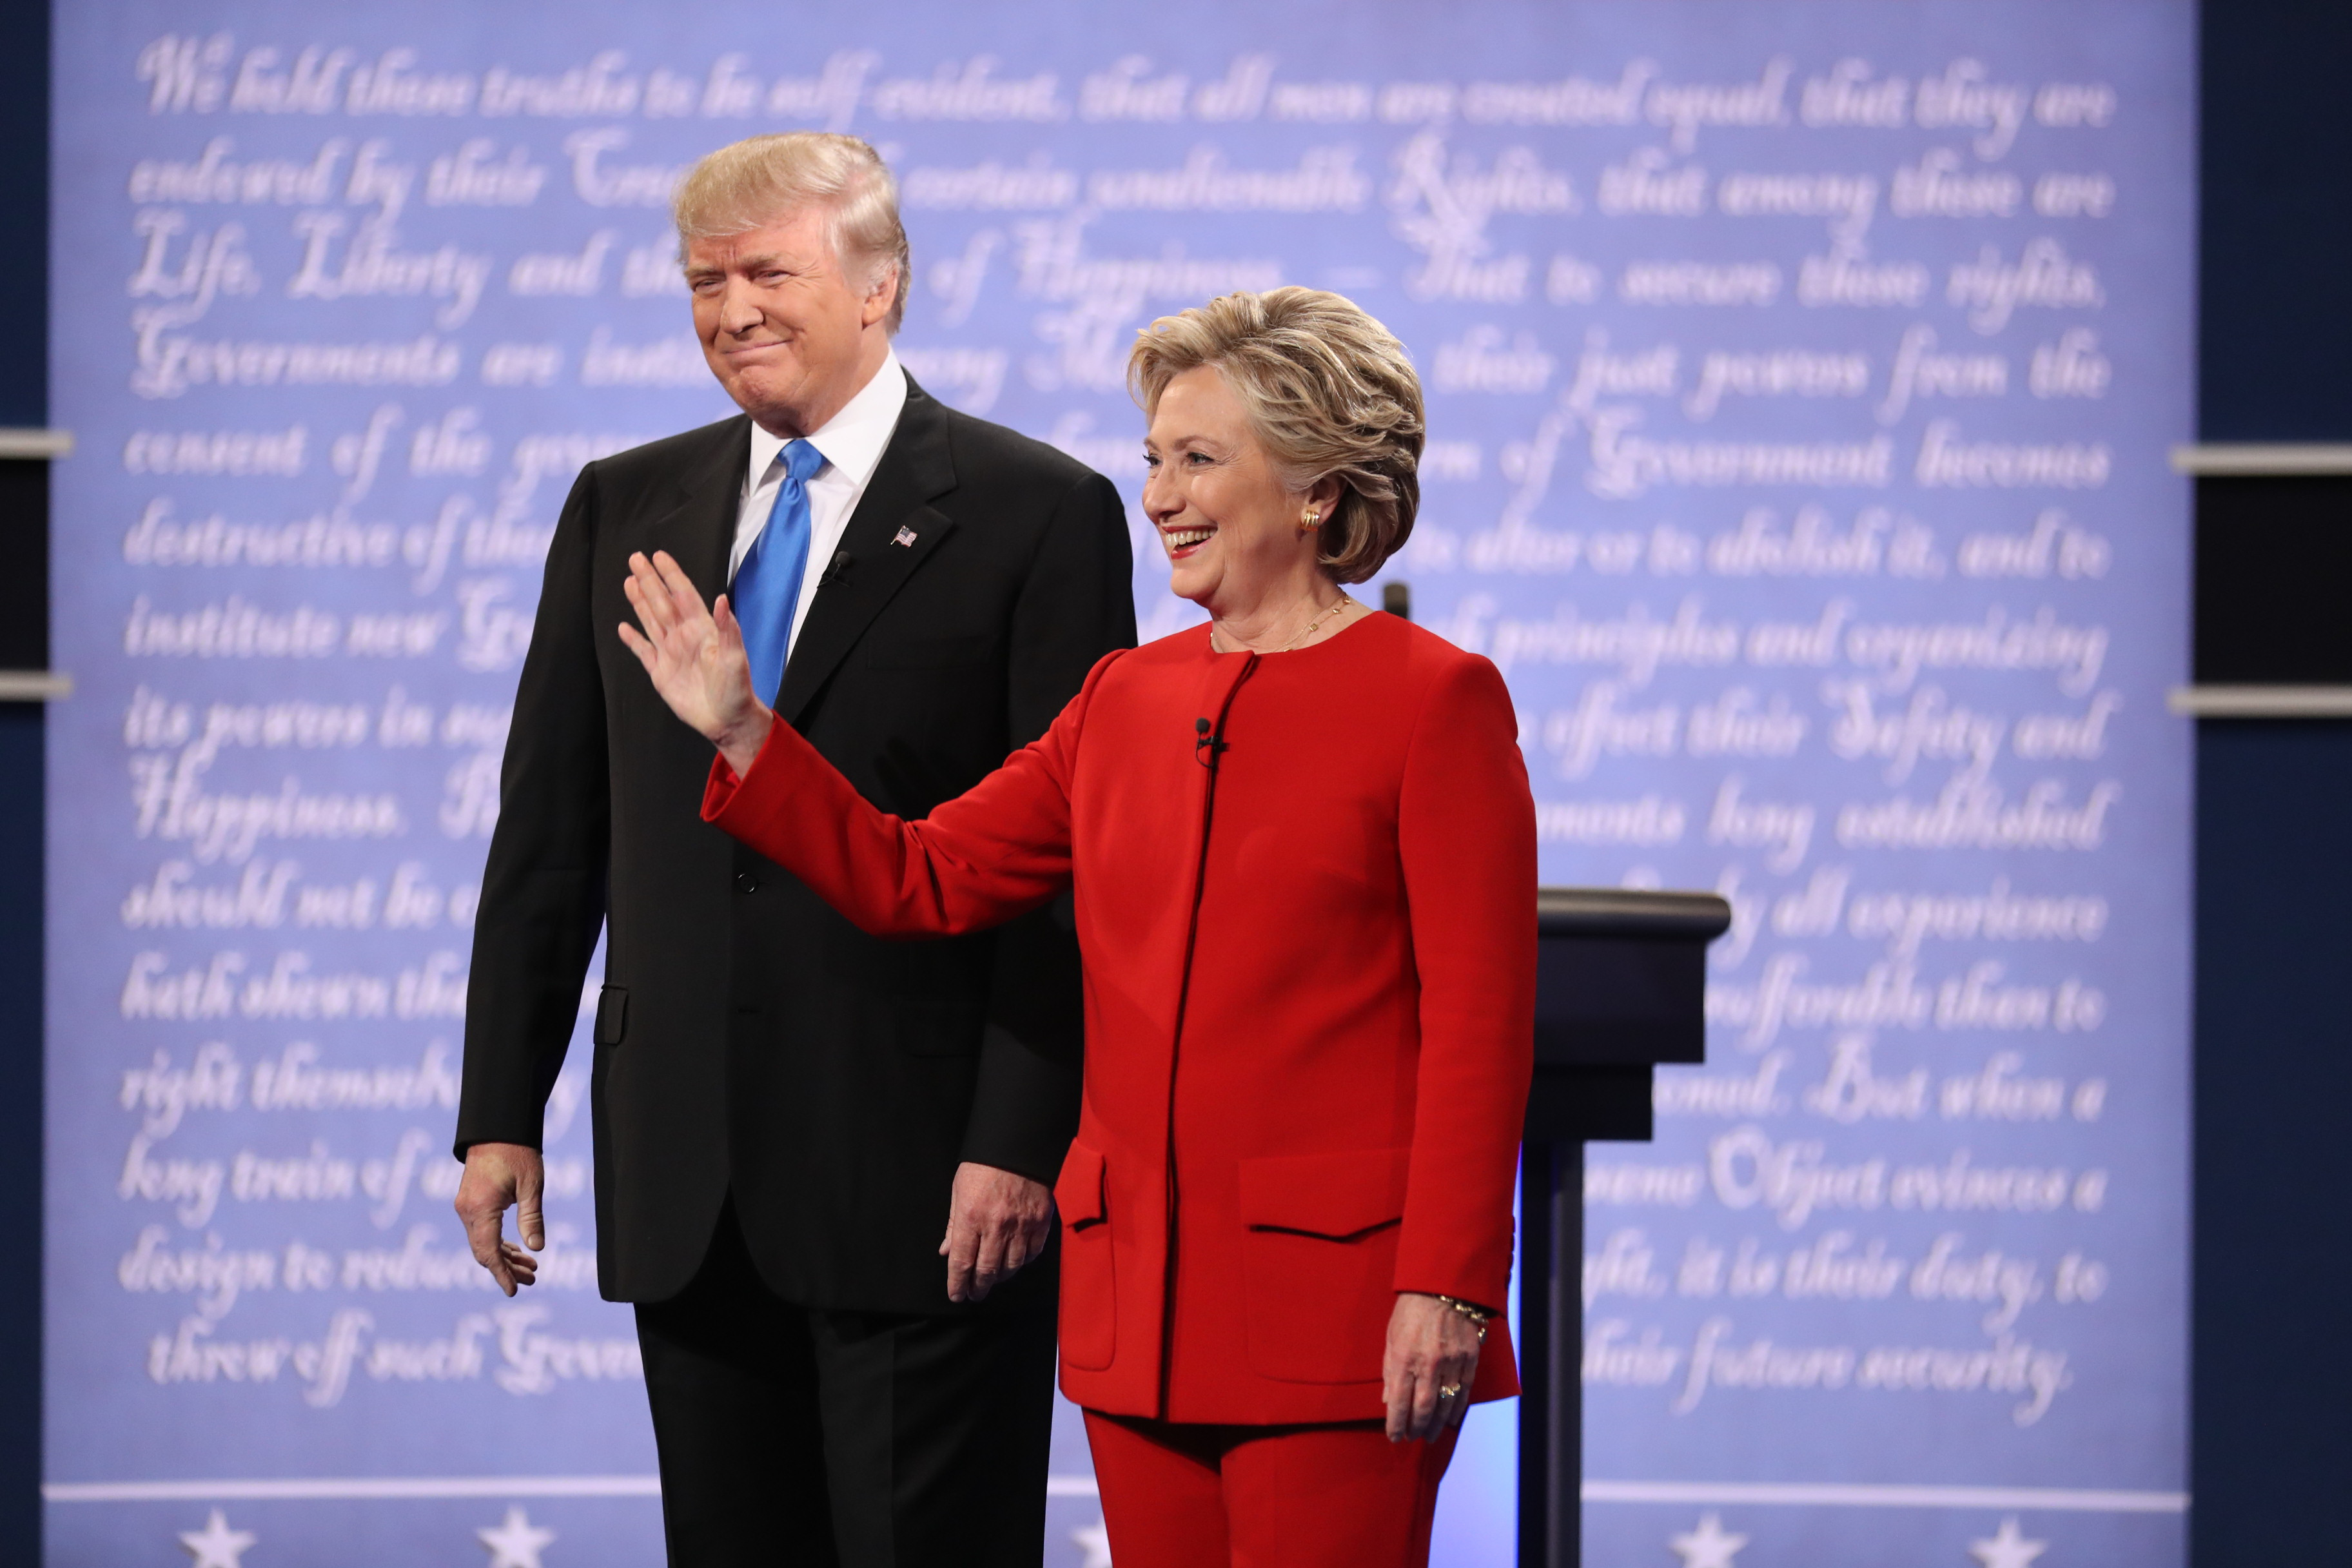 Hillary Clinton and Donald Trump take the stage for their first presidential debate at Hofstra University in Hempstead, N.Y., on Sept. 26. The FBI announced Oct. 28 that it would conduct a new investigation into Clinton's use of a private email server. (Damon Winter/New York Times)